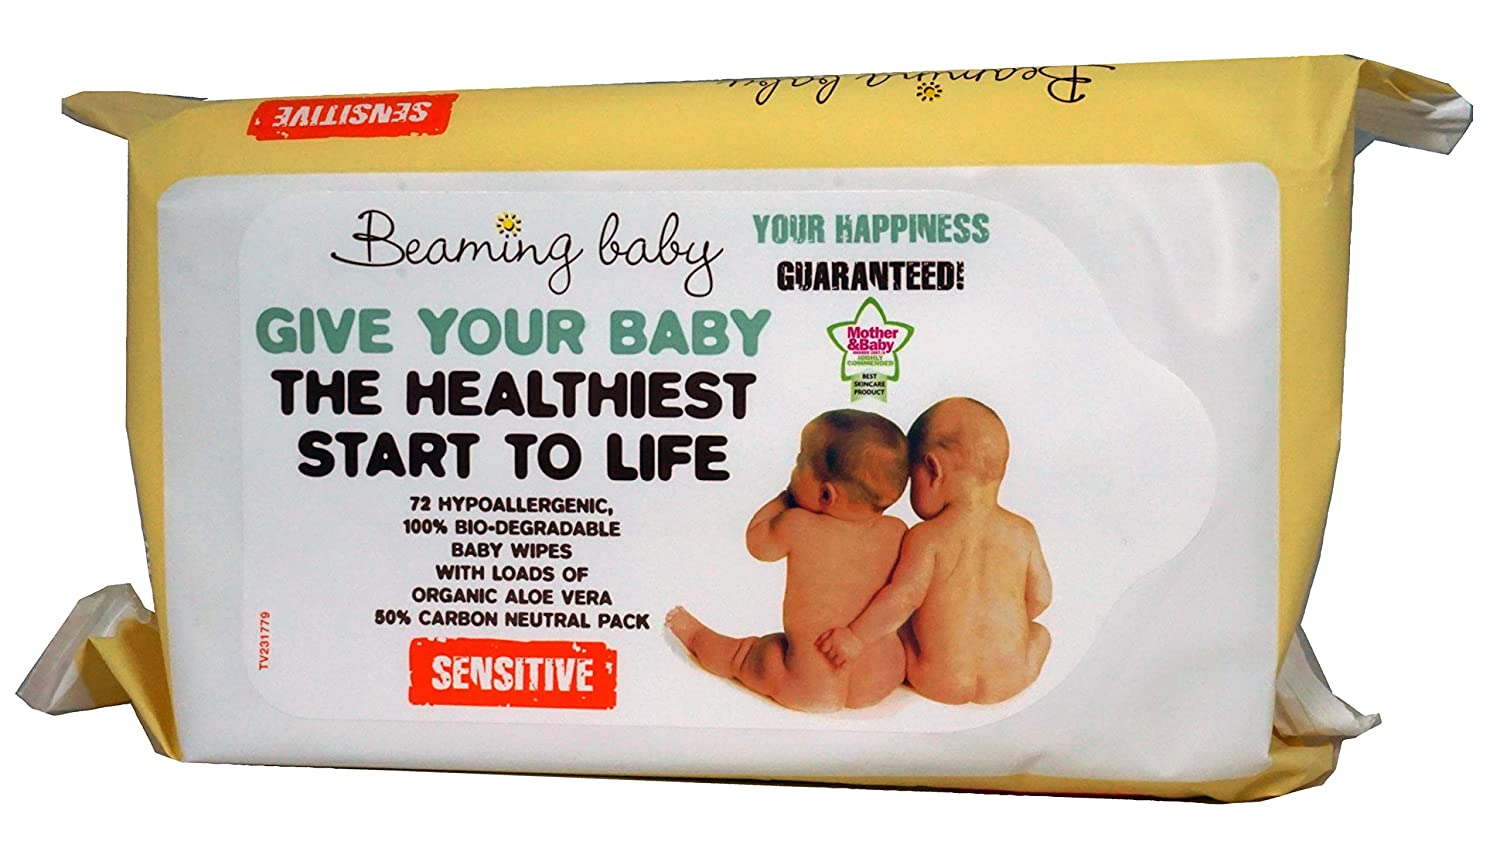 Beaming Baby Organic Baby Skincare Wipes - Pack of 72 Wipes